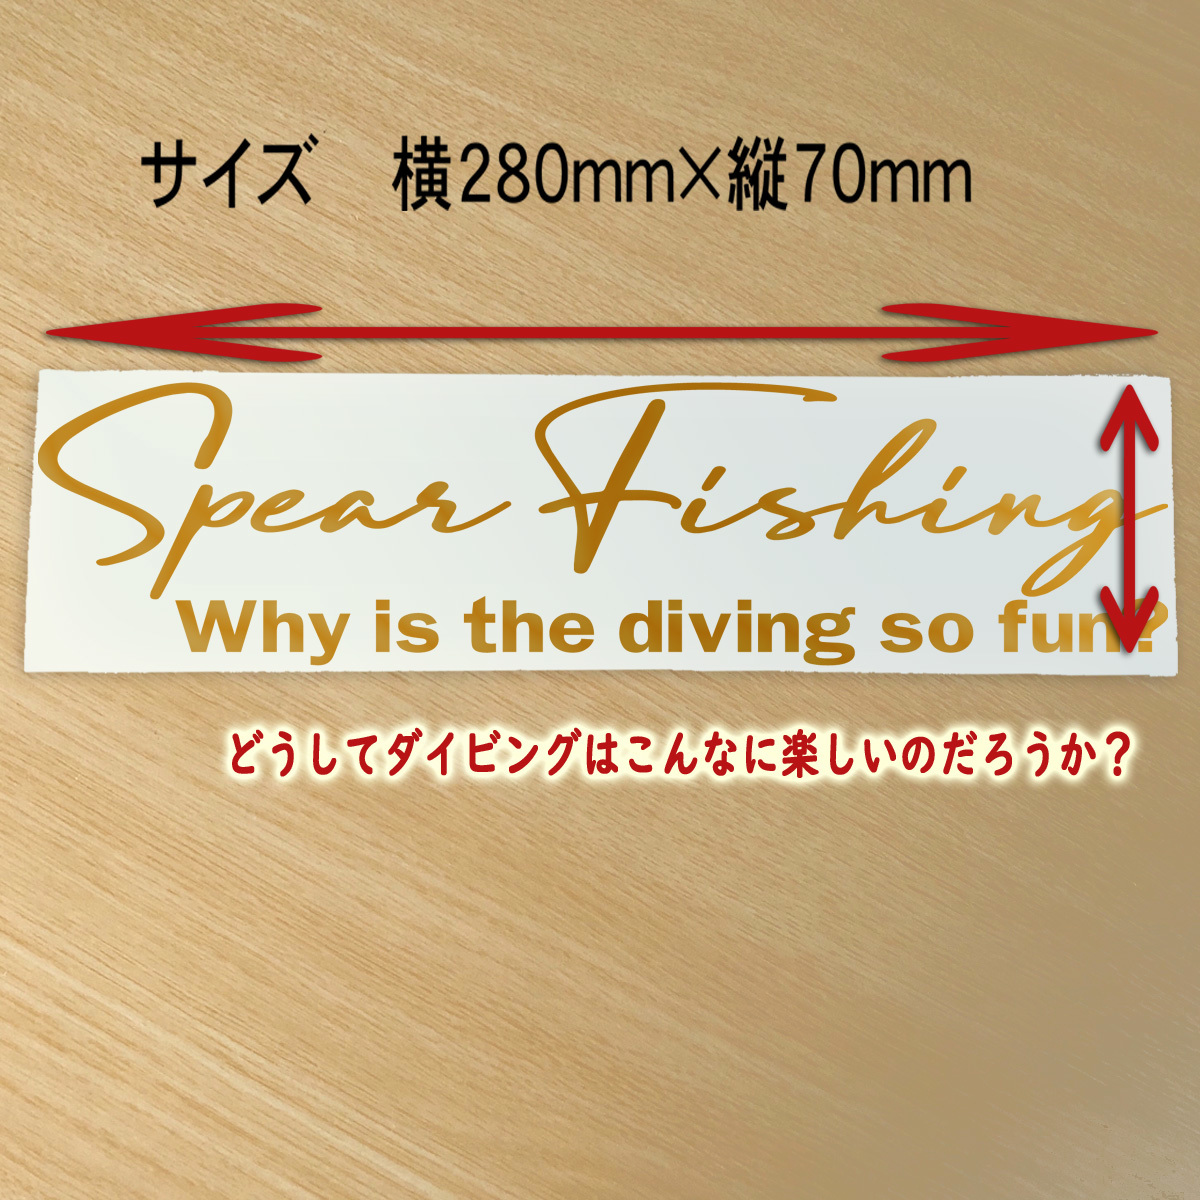 ●Sportsmind風 Spear Fishing カッティングステッカー Why is the diving so fun ?どうしてダイビングはそんなに楽しいの? NO631_画像3